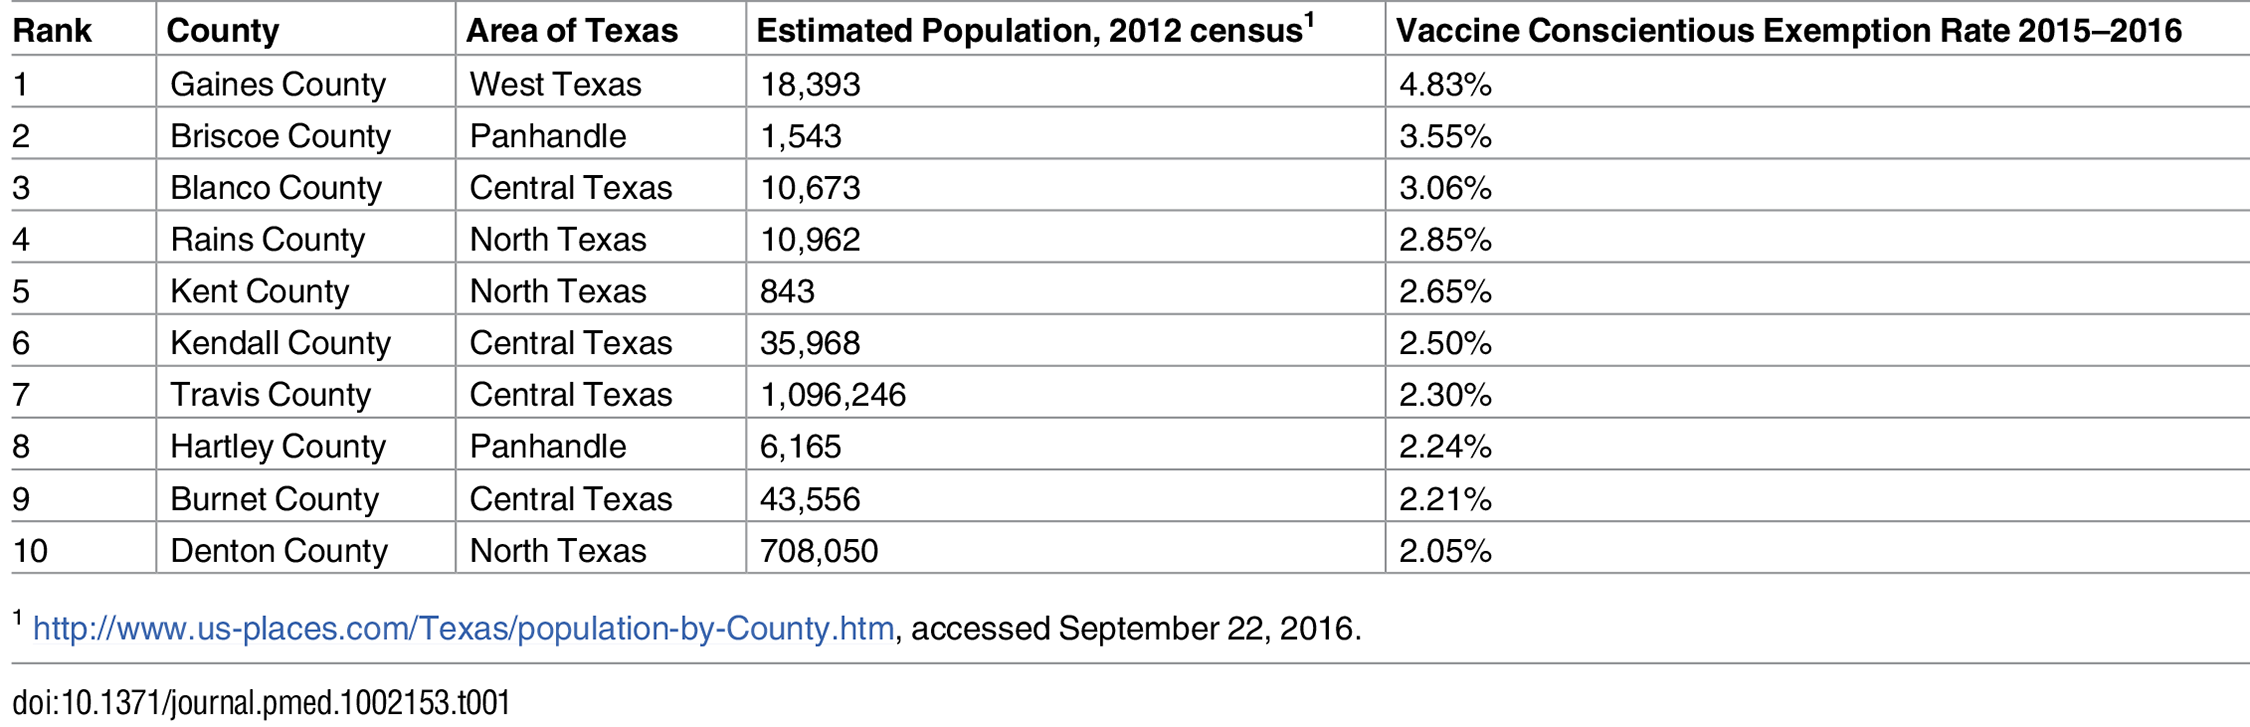 "Rank of leading Texas county vaccine ""conscientious exemption"" rates (based on information from the Texas Department of State Health Services <a href=&quot;https://www.dshs.texas.gov/immunize/coverage/Conscientious-Exemptions-Data.shtm&quot;>https://www.dshs.texas.gov/immunize/coverage/Conscientious-Exemptions-Data.shtm</a>)."